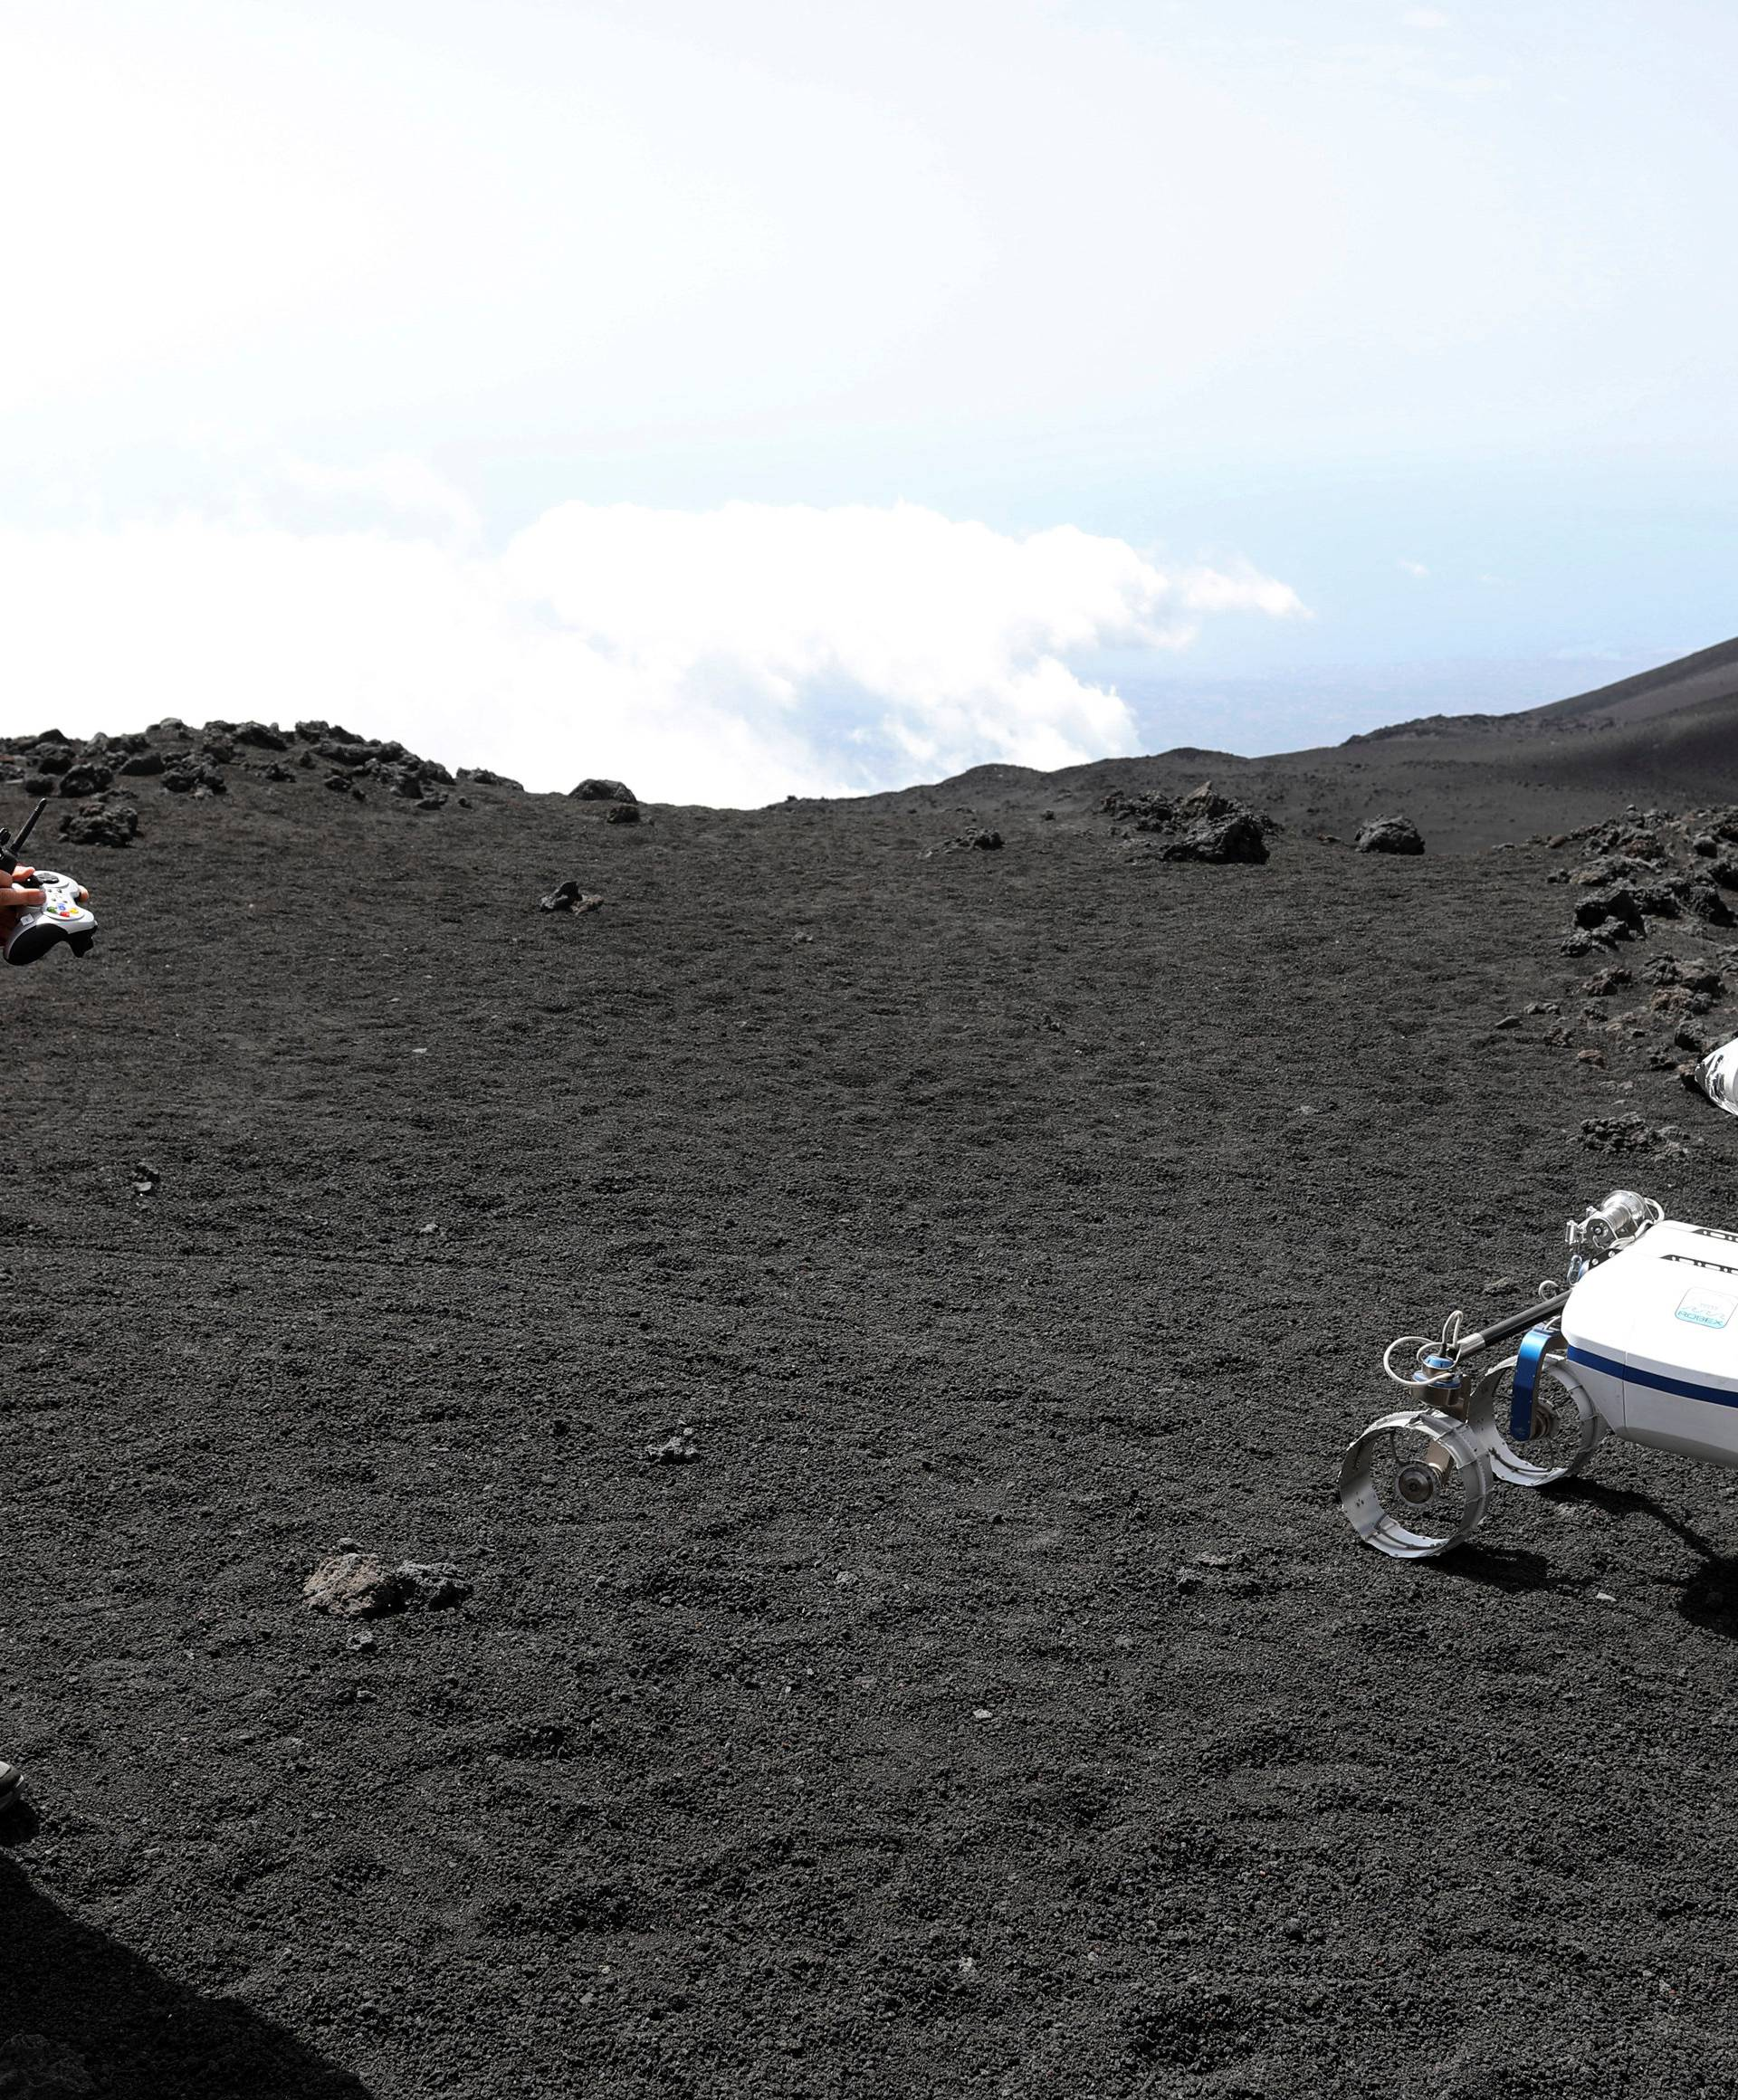 A scientist from German Aerospace Center controls a robot on the Mount Etna